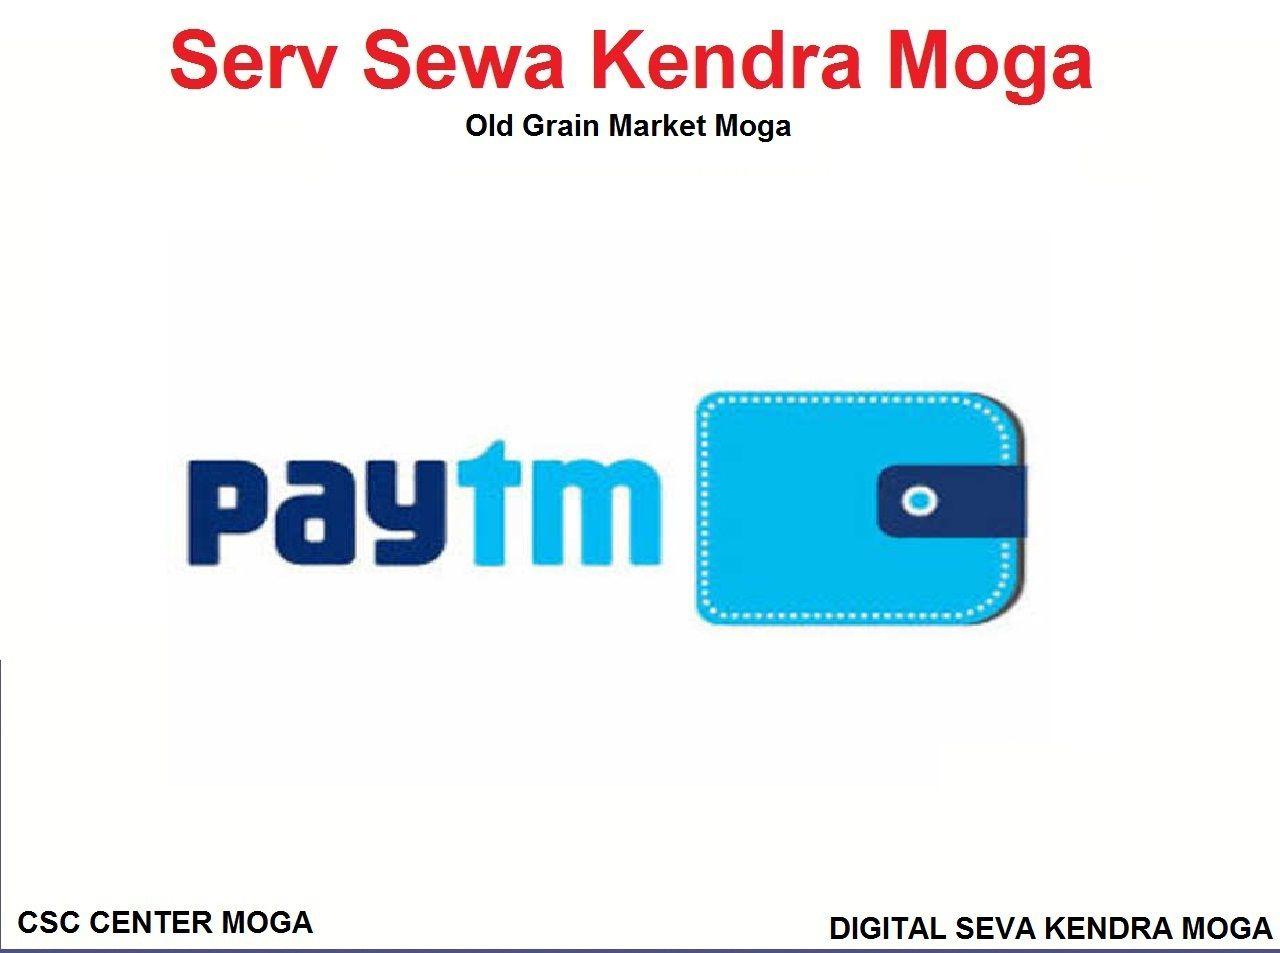 Paytm Kyc Center Merchant Nearby You Join Serv Sewa Kendra Moga We Provide To Complete Your Kyc With Aadhaar For Your Pay In 2020 Moga Voter Card Government Services